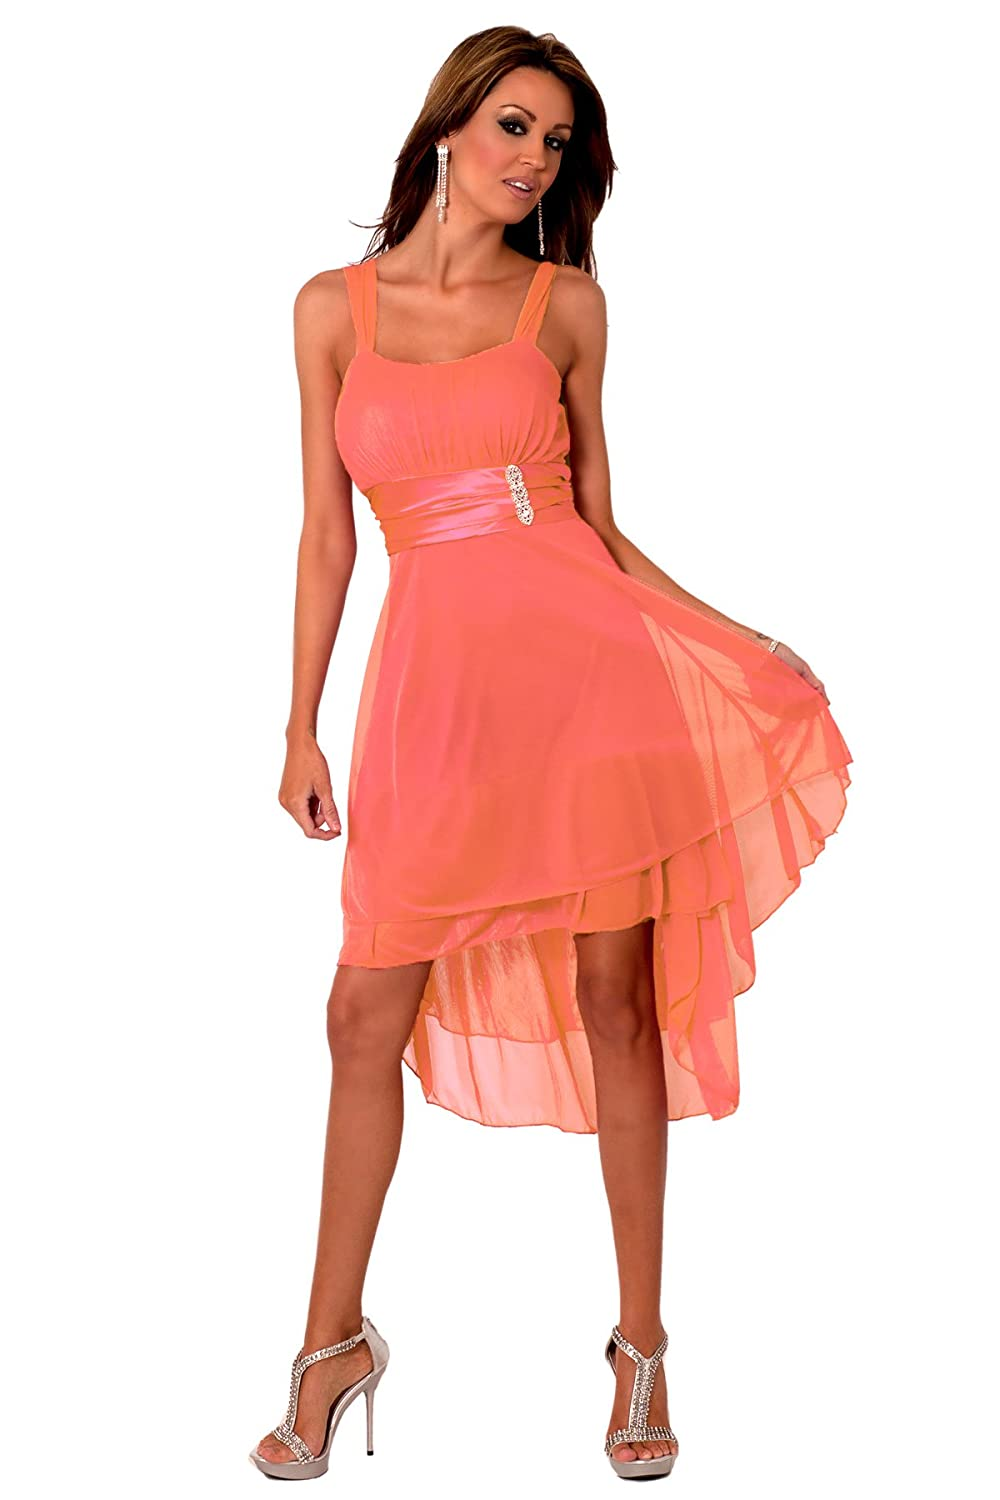 h1376 coral sleeveless sheer satin knee length cocktail